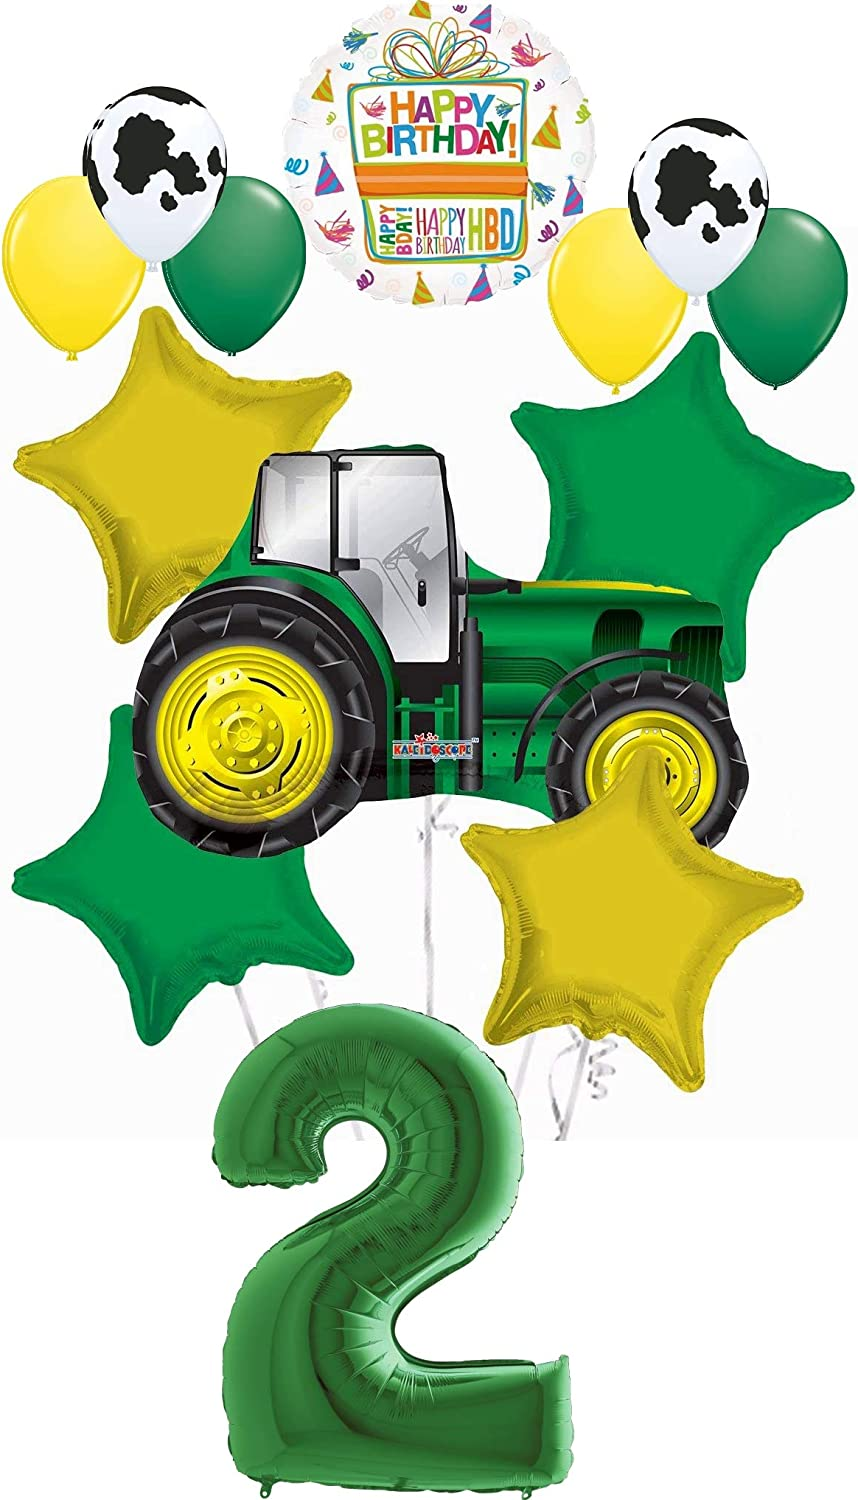 Farm Tractor 2nd Birthday Party Supplies 13 pc Balloon Bouquet Decorations